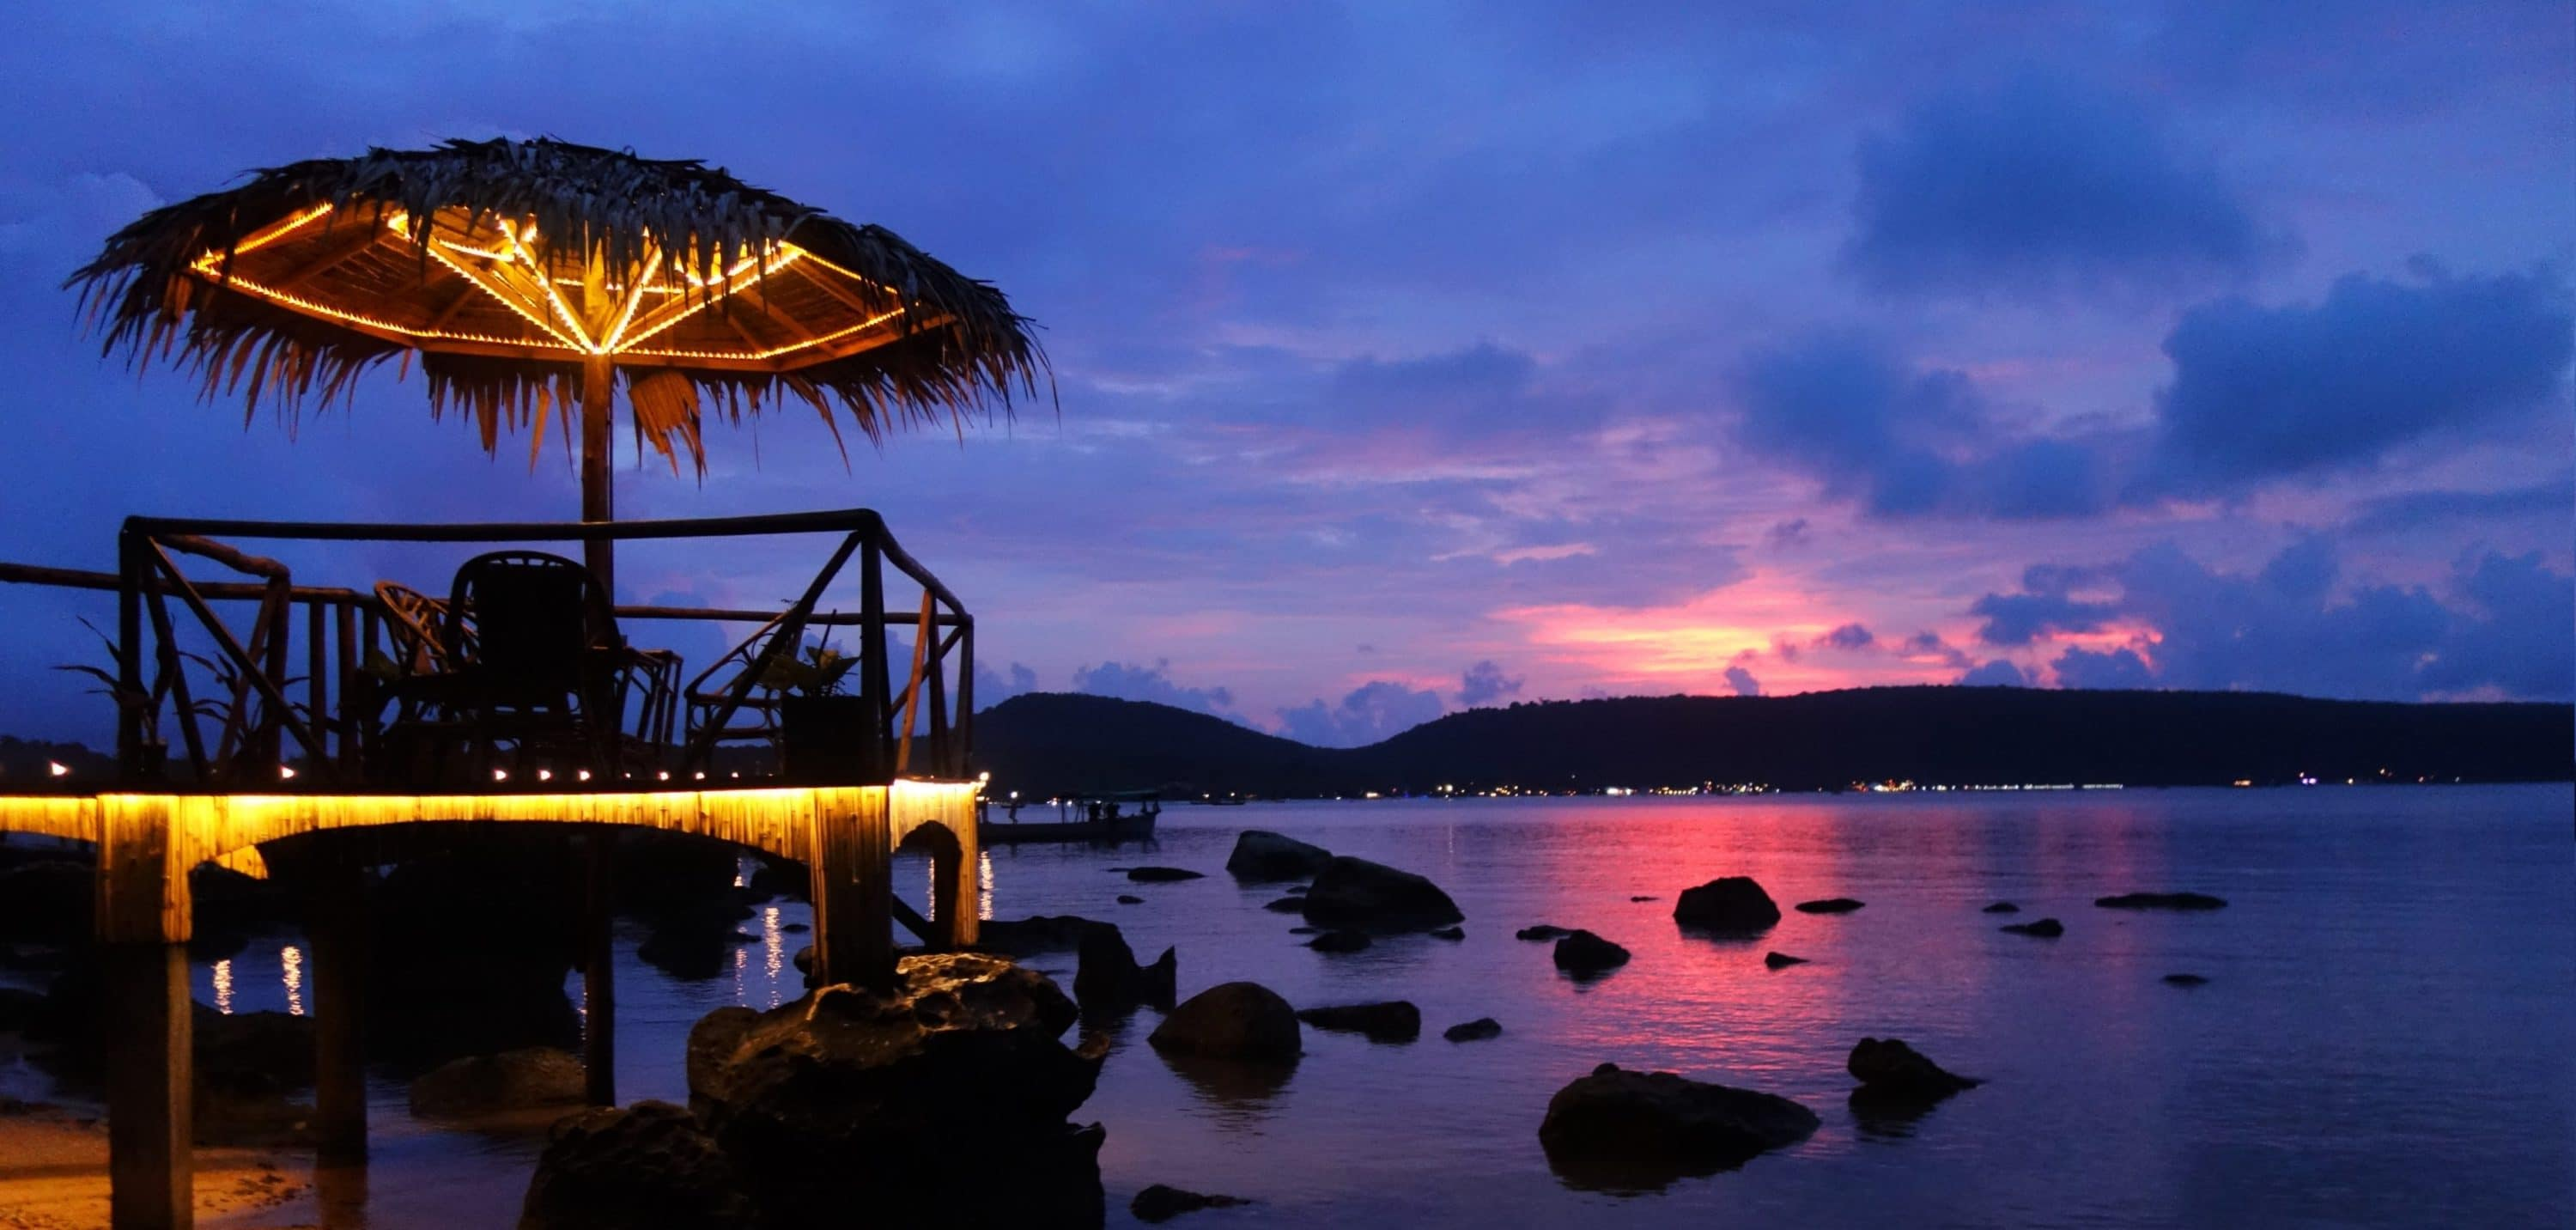 Volunteering in Cambodia. What is it like to work in a hotel on an island paradise?